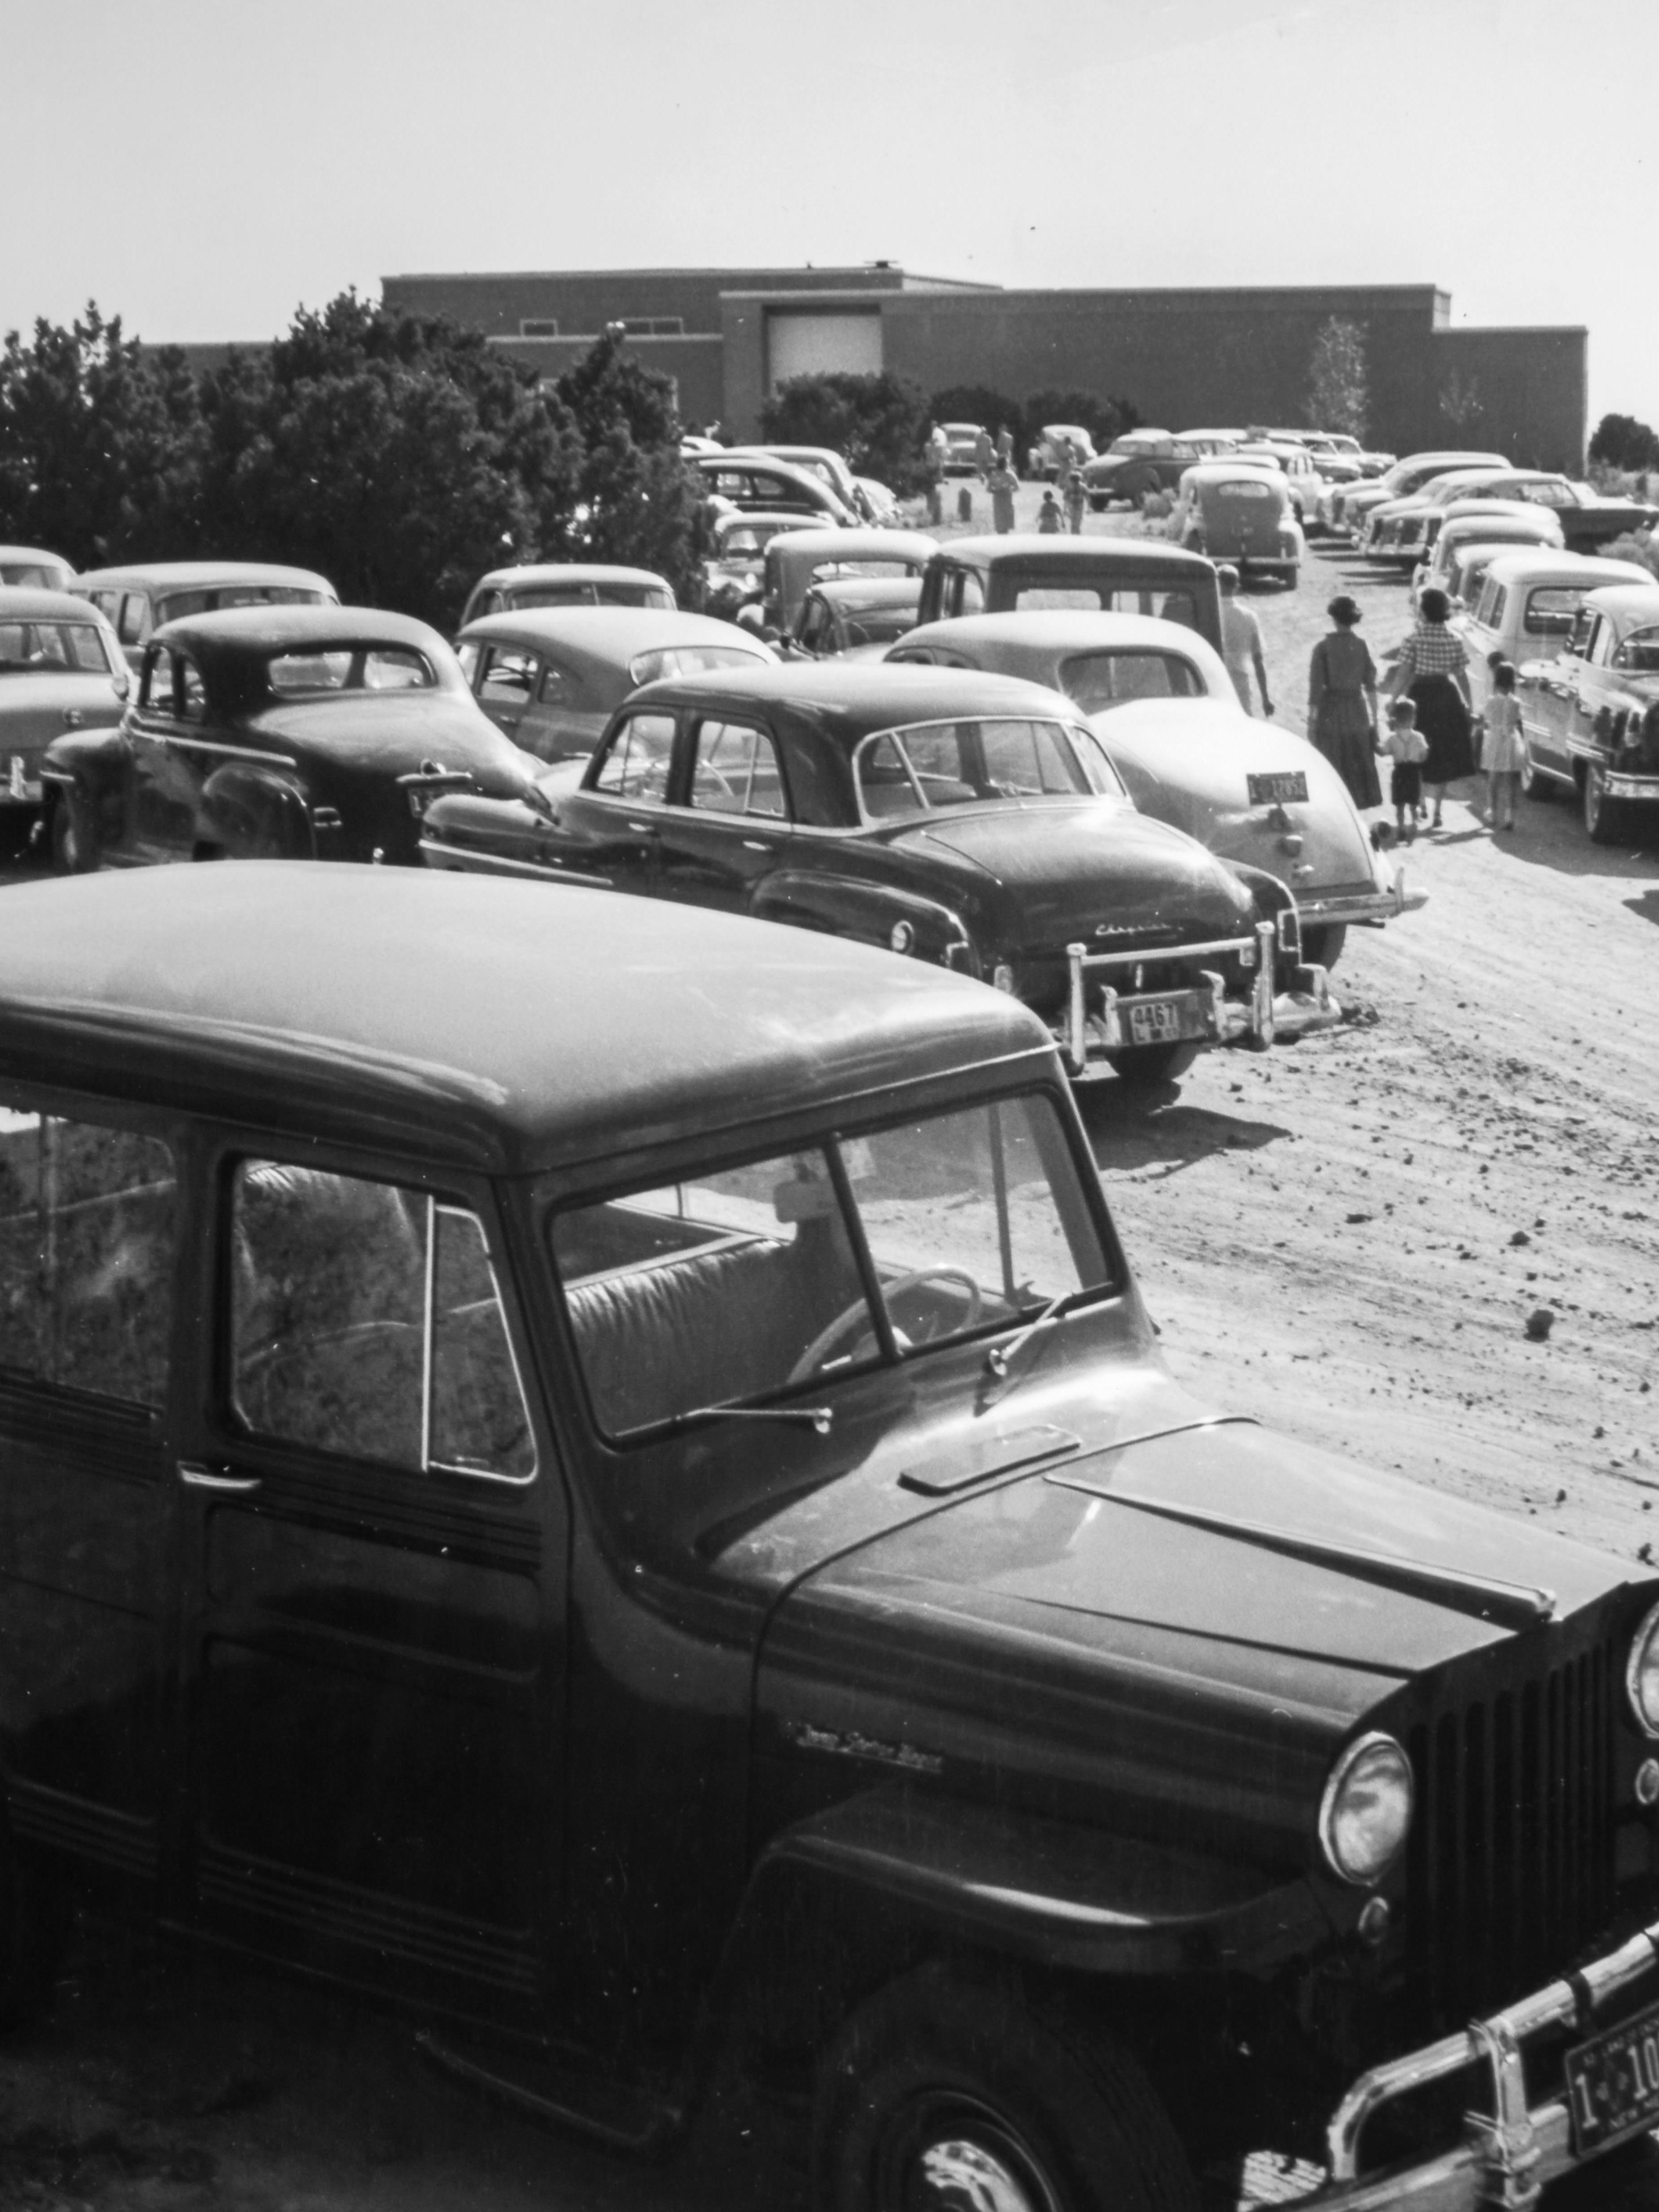 The dirt parking lot on Opening Day in 1953, original photographer unknown, cropped version of a digital image by Blair Clark, 2016